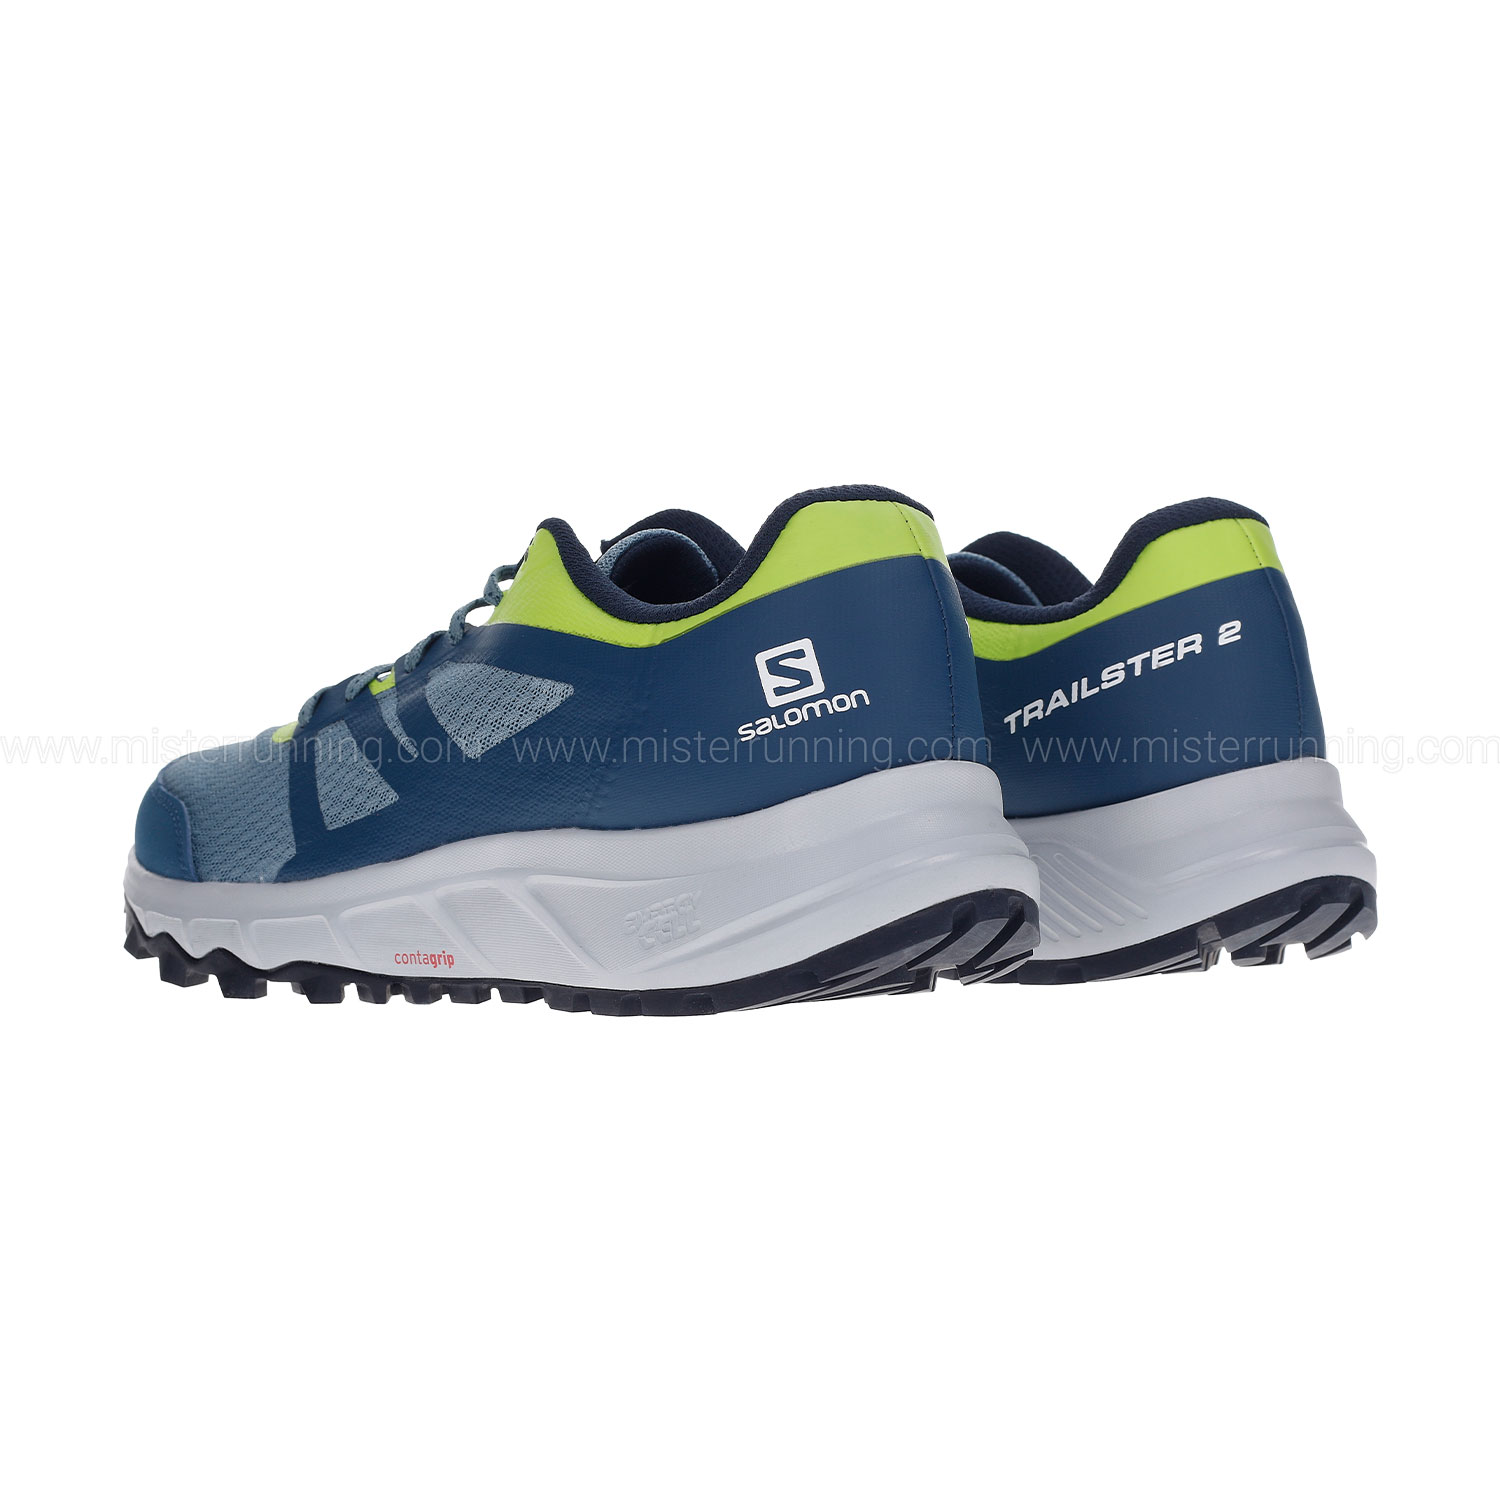 Salomon Trailster 2 - Bluestone/Poseidon/Acidlime